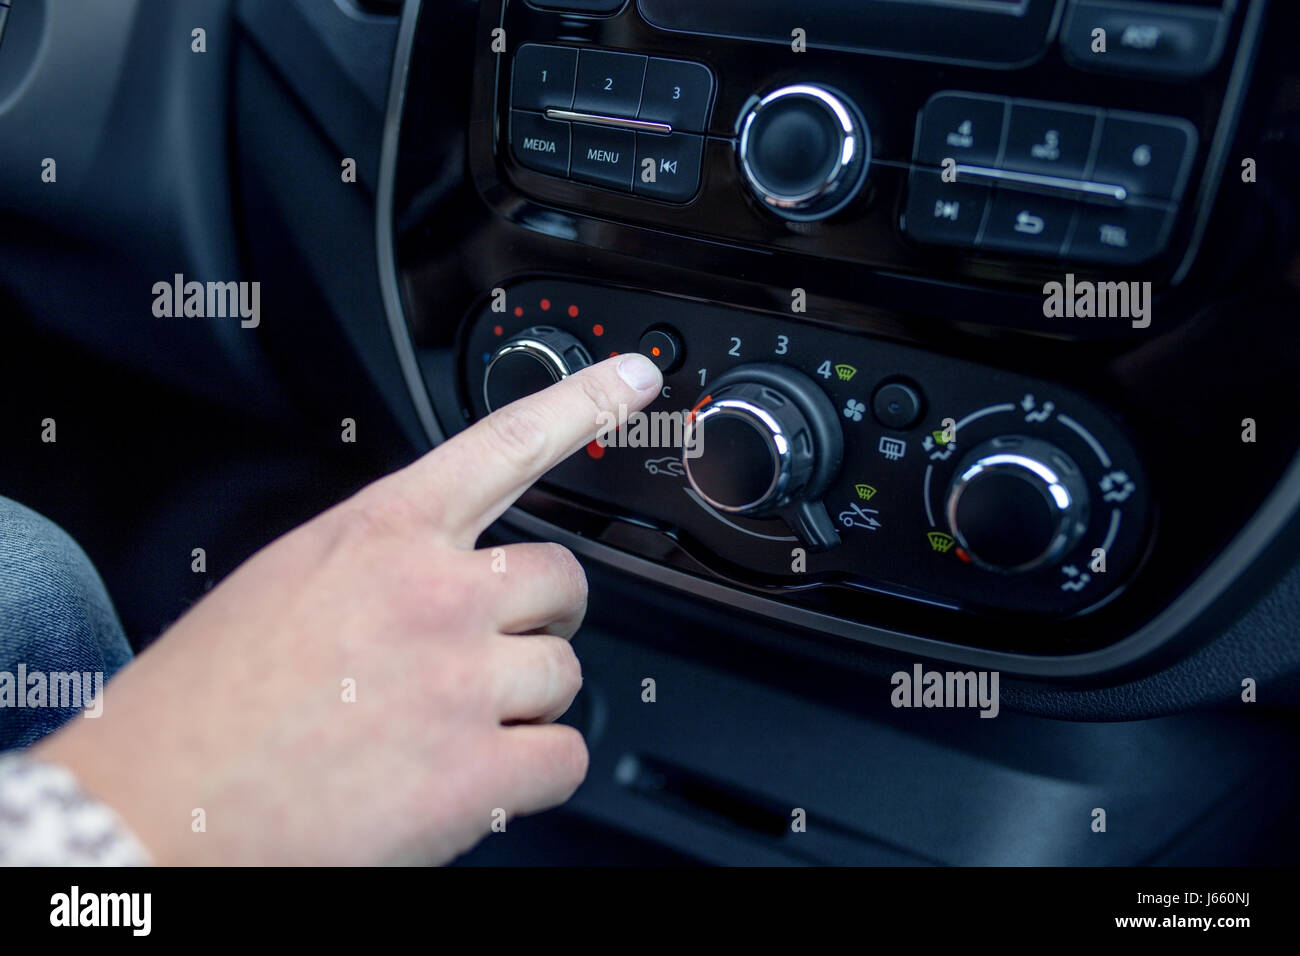 male hand pressing button in modern car. Man adjusts the temperature of the car air conditioner - Stock Image